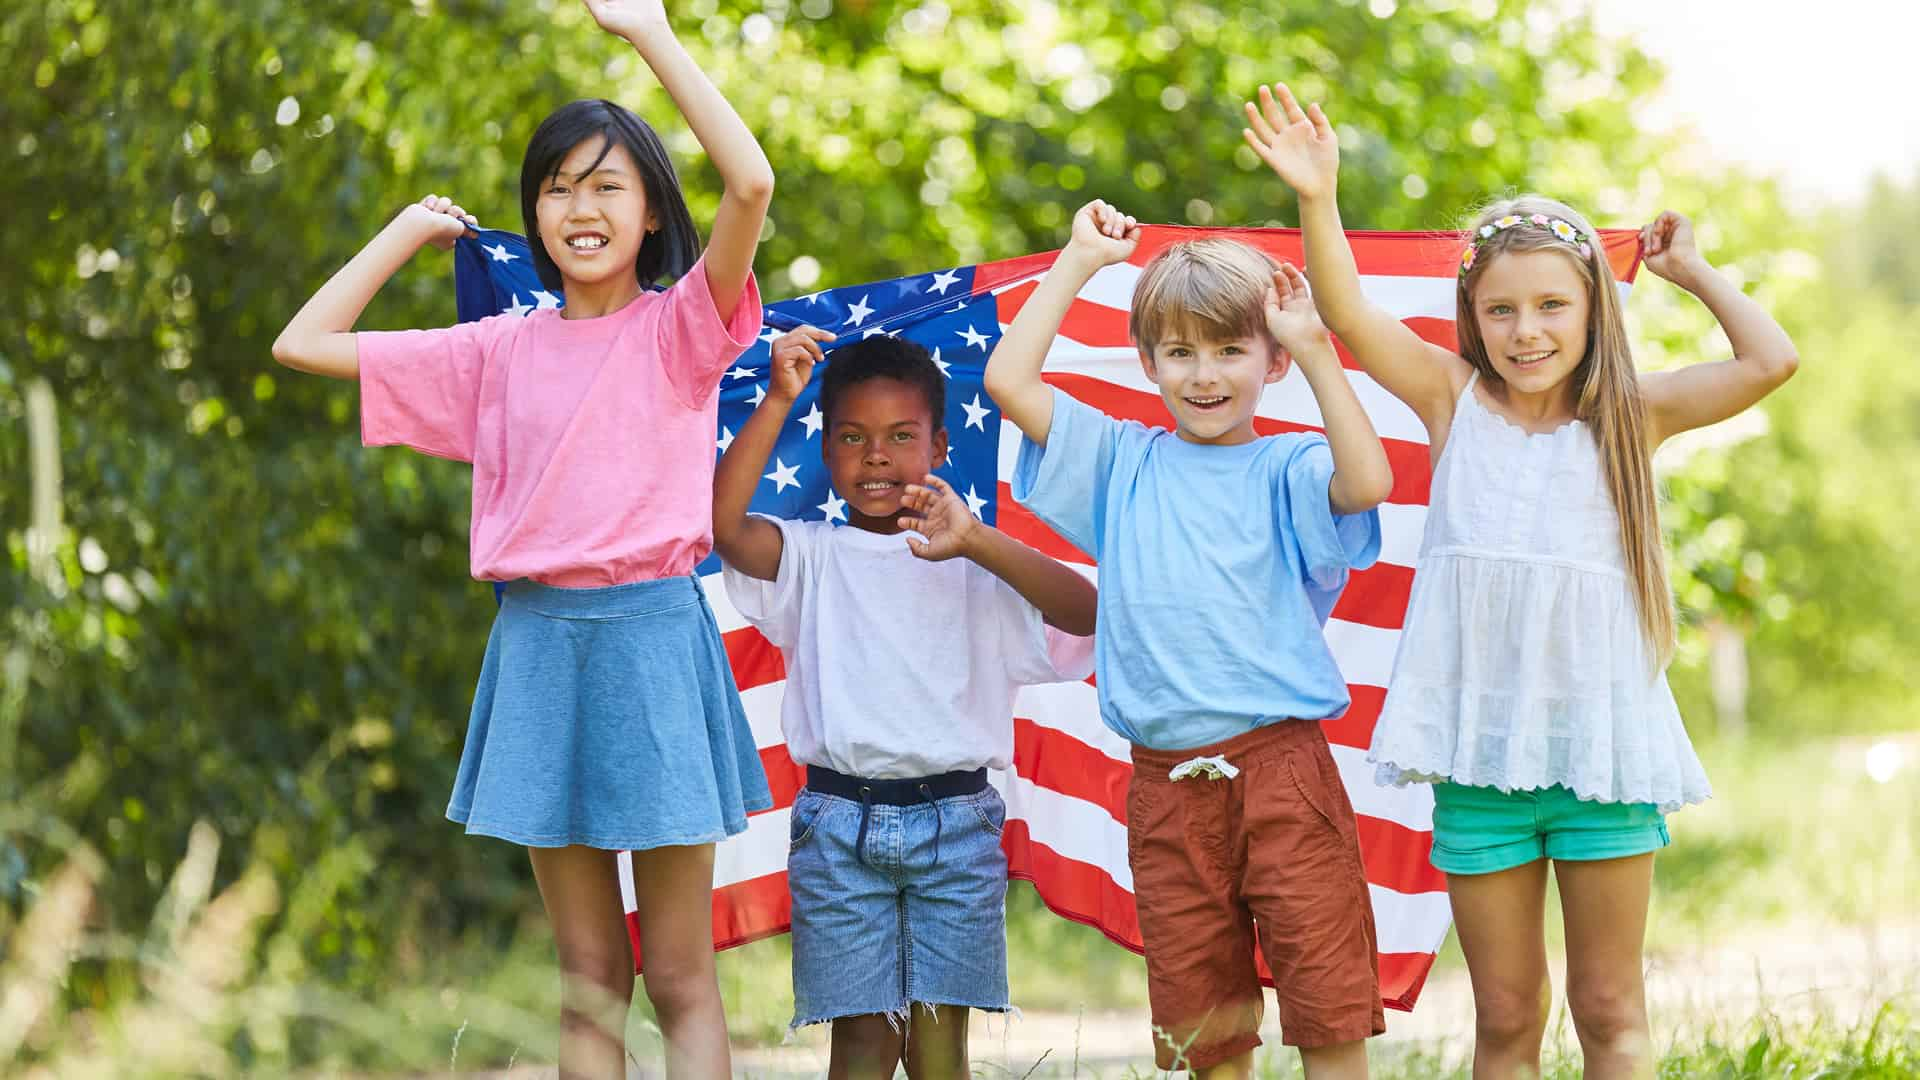 Multicultural group of kids waving with US flag on Labor Day